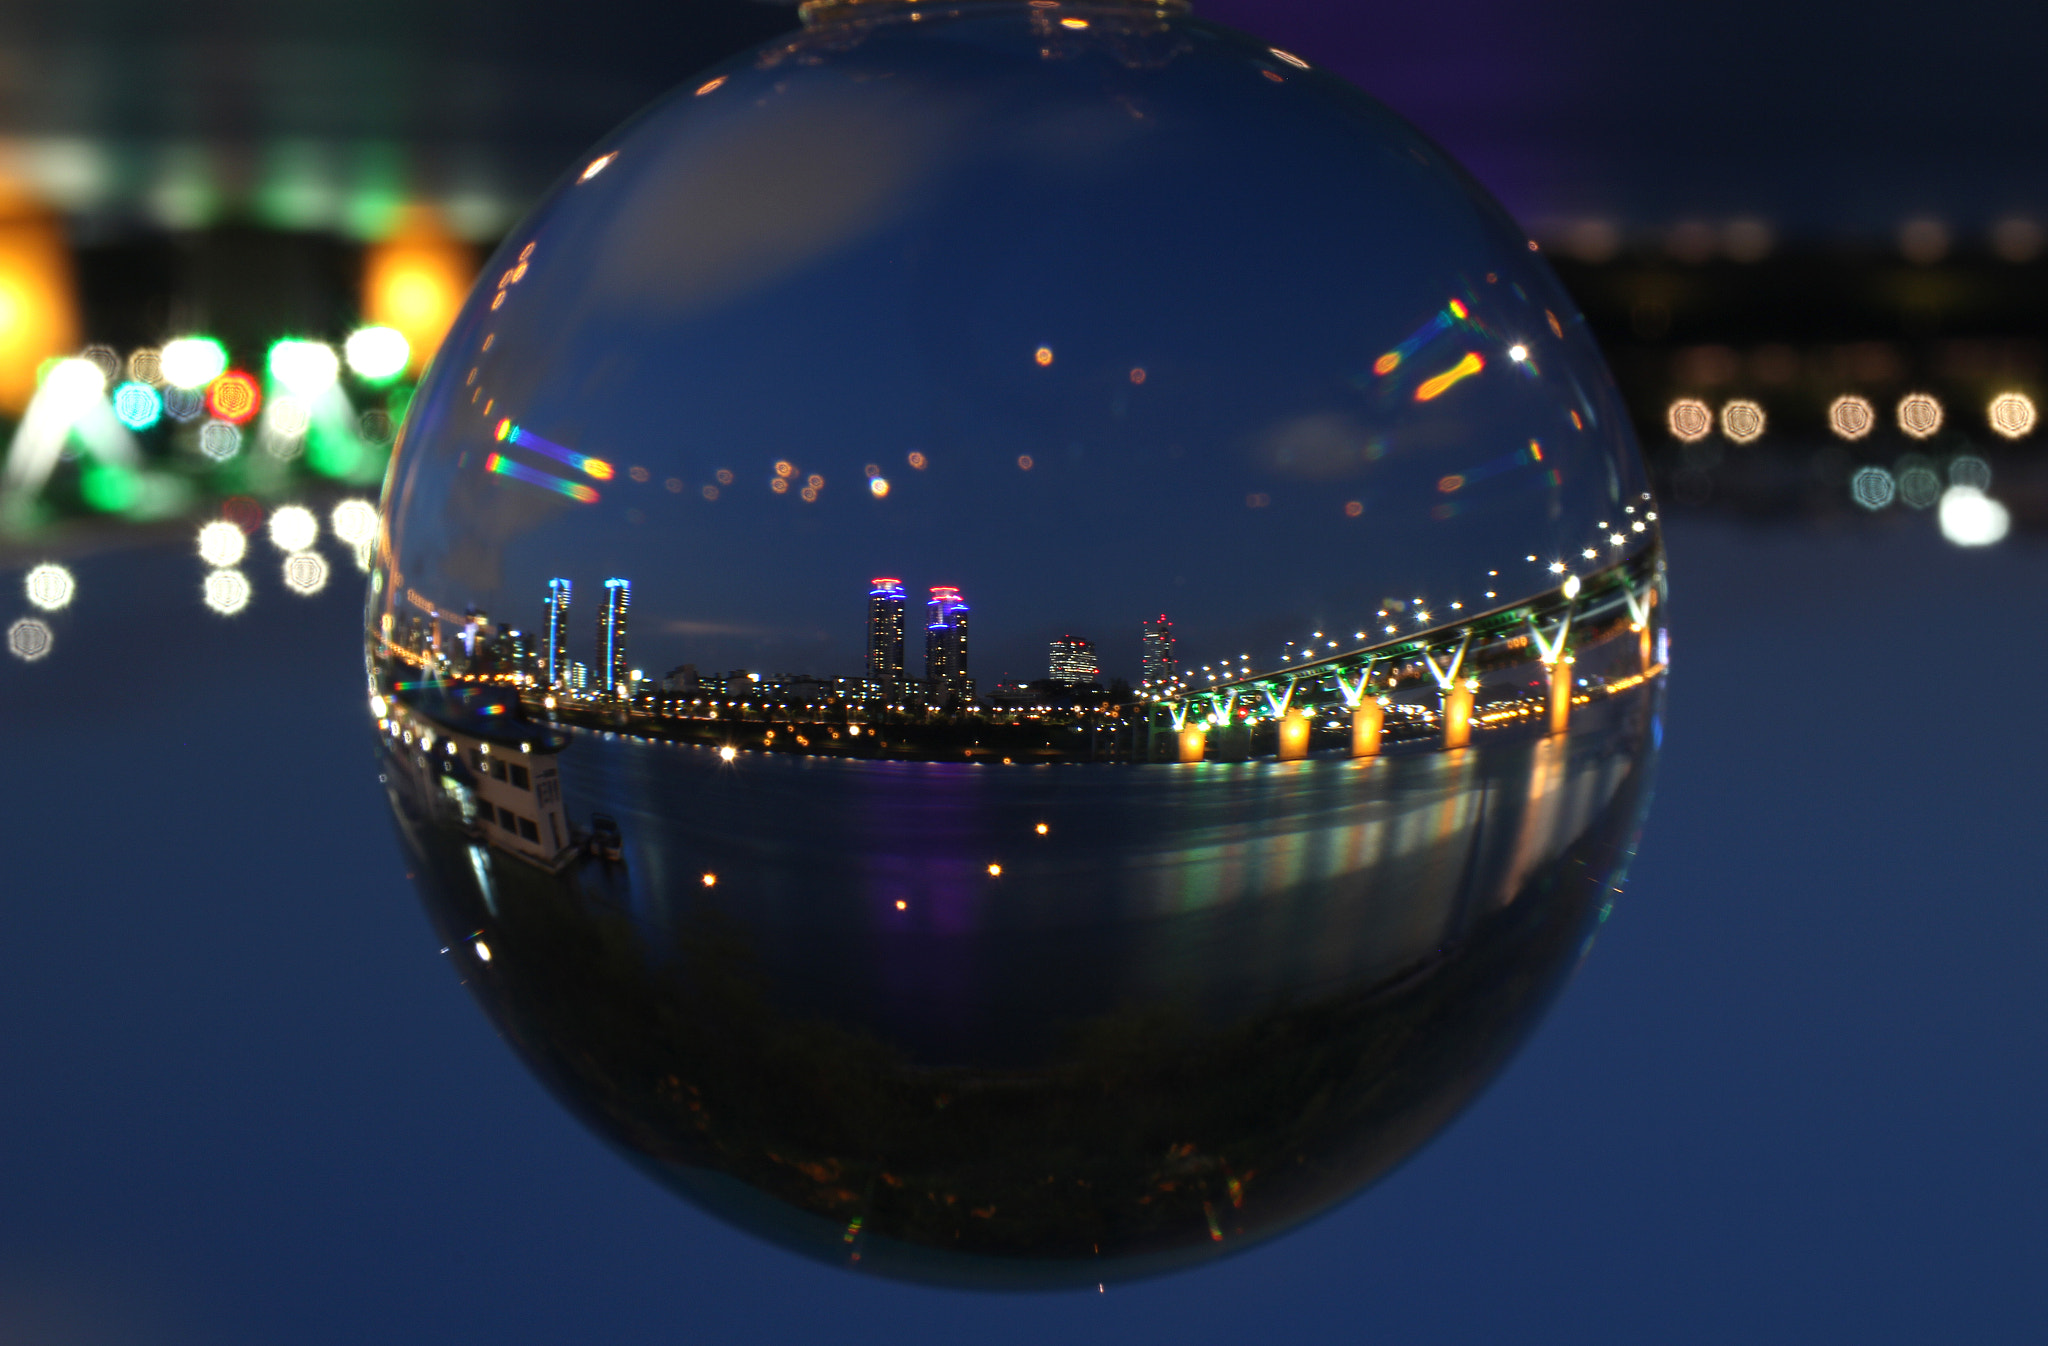 Photograph Crystal Ball by Dong Hyeon Kim on 500px